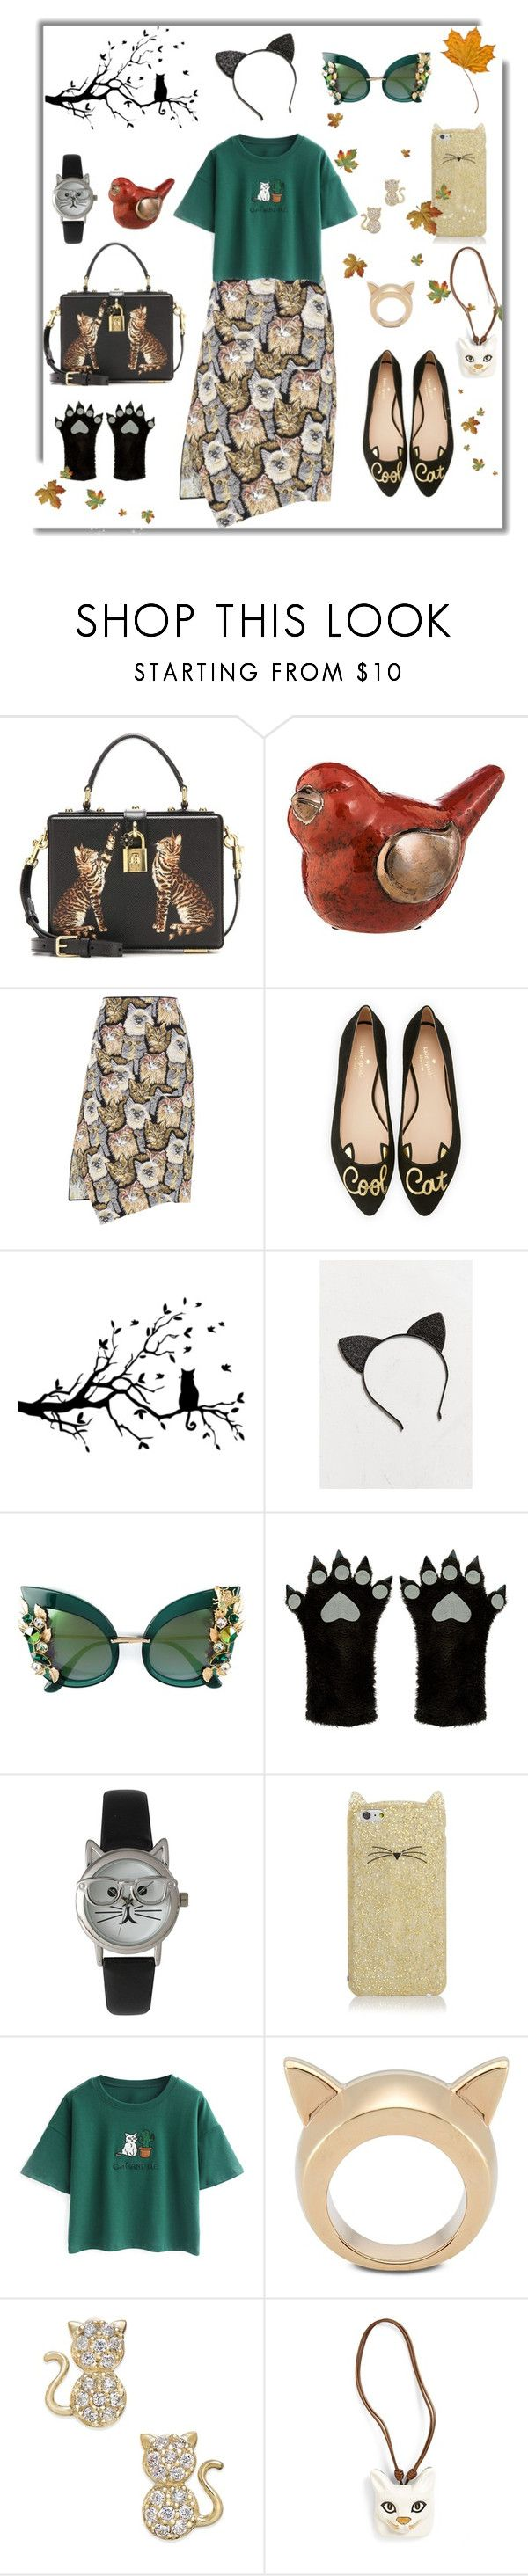 """Cat look😸"" by dilka-ylibka on Polyvore featuring мода, Dolce&Gabbana, Evergreen, STELLA McCARTNEY, Kate Spade, Urban Outfitters, Accessorize, Olivia Pratt, Chicnova Fashion и Loewe"